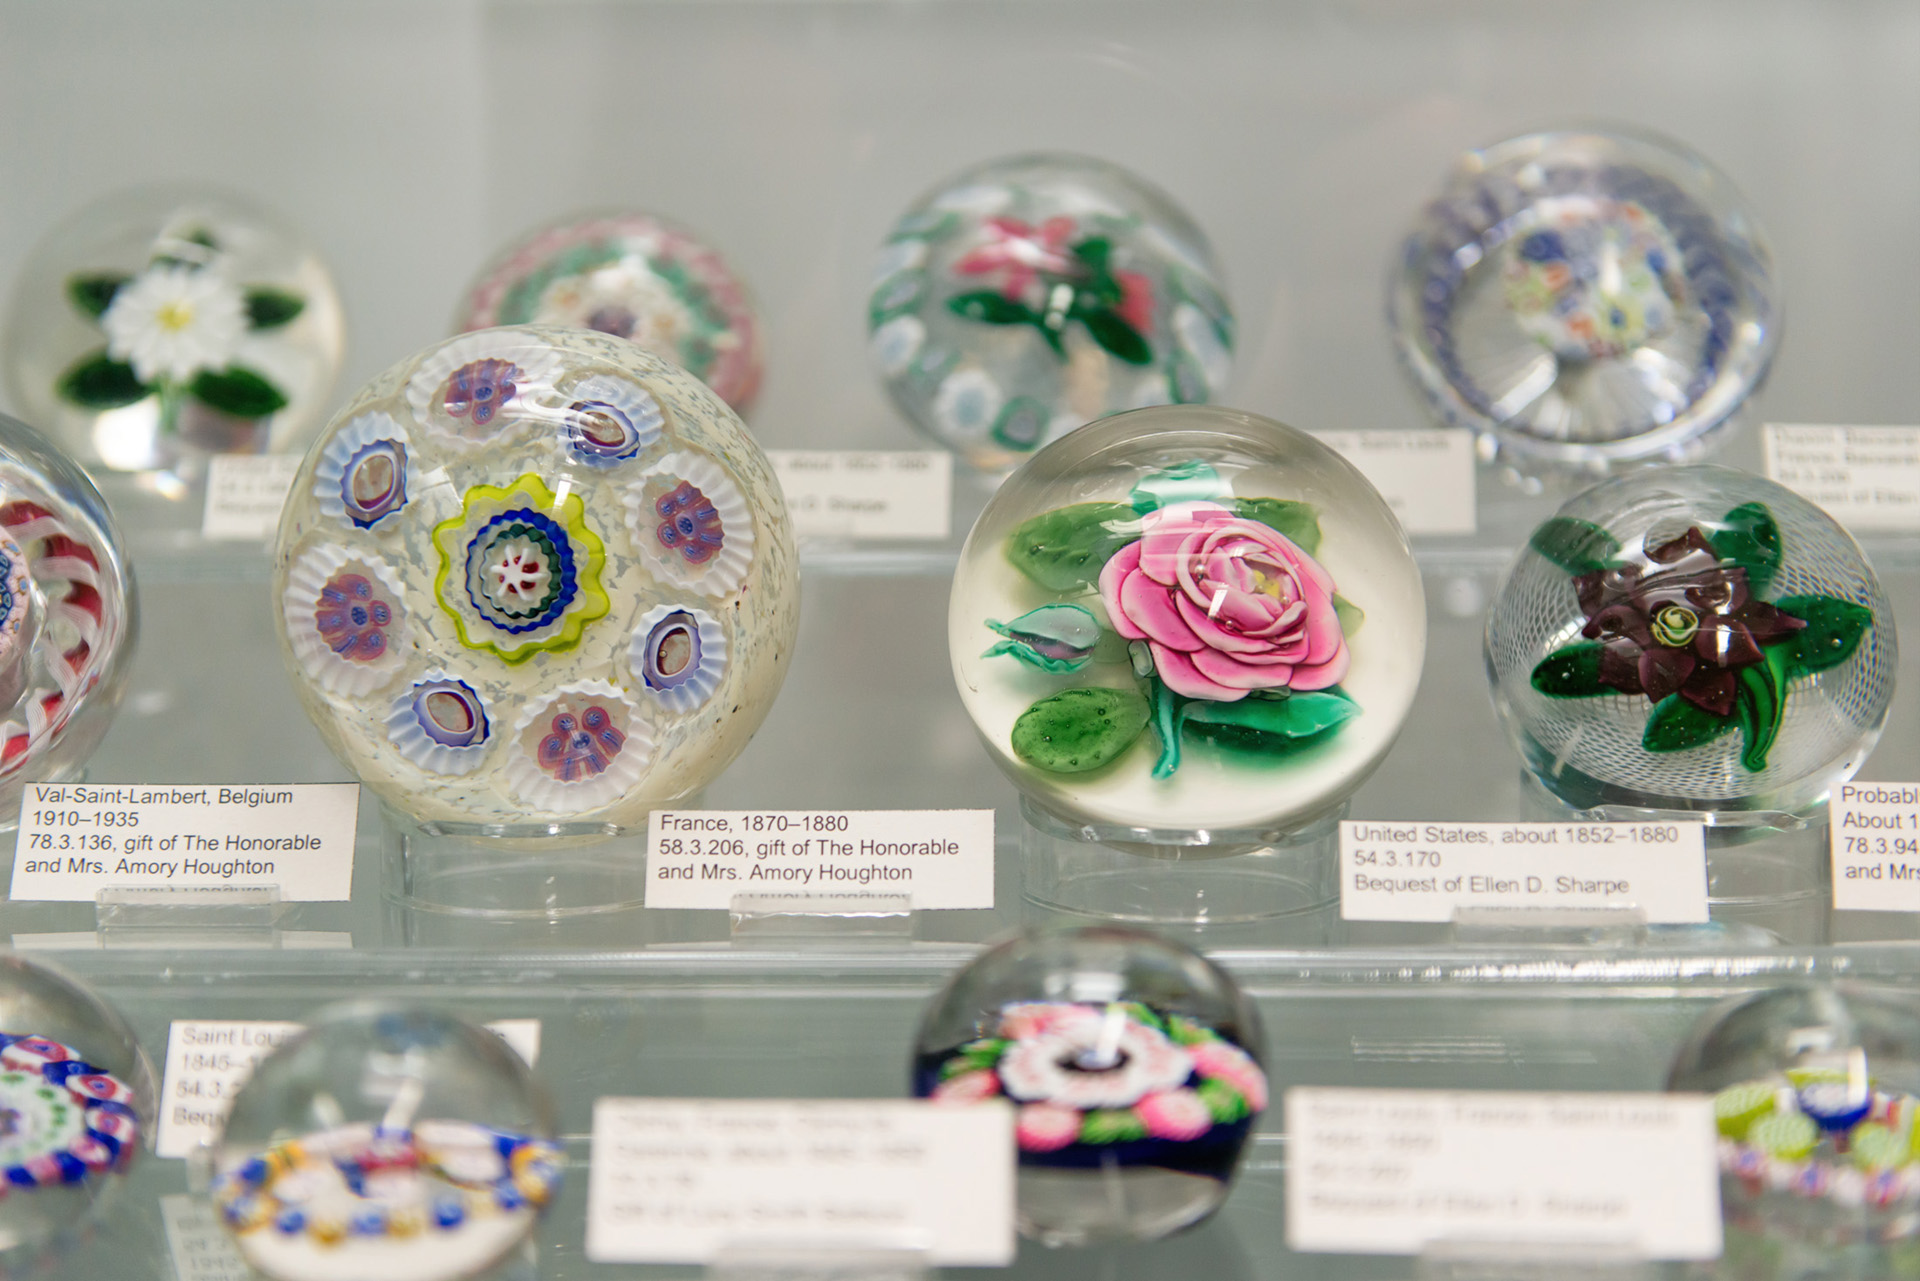 Paperweight at the Corning Museum of Glass